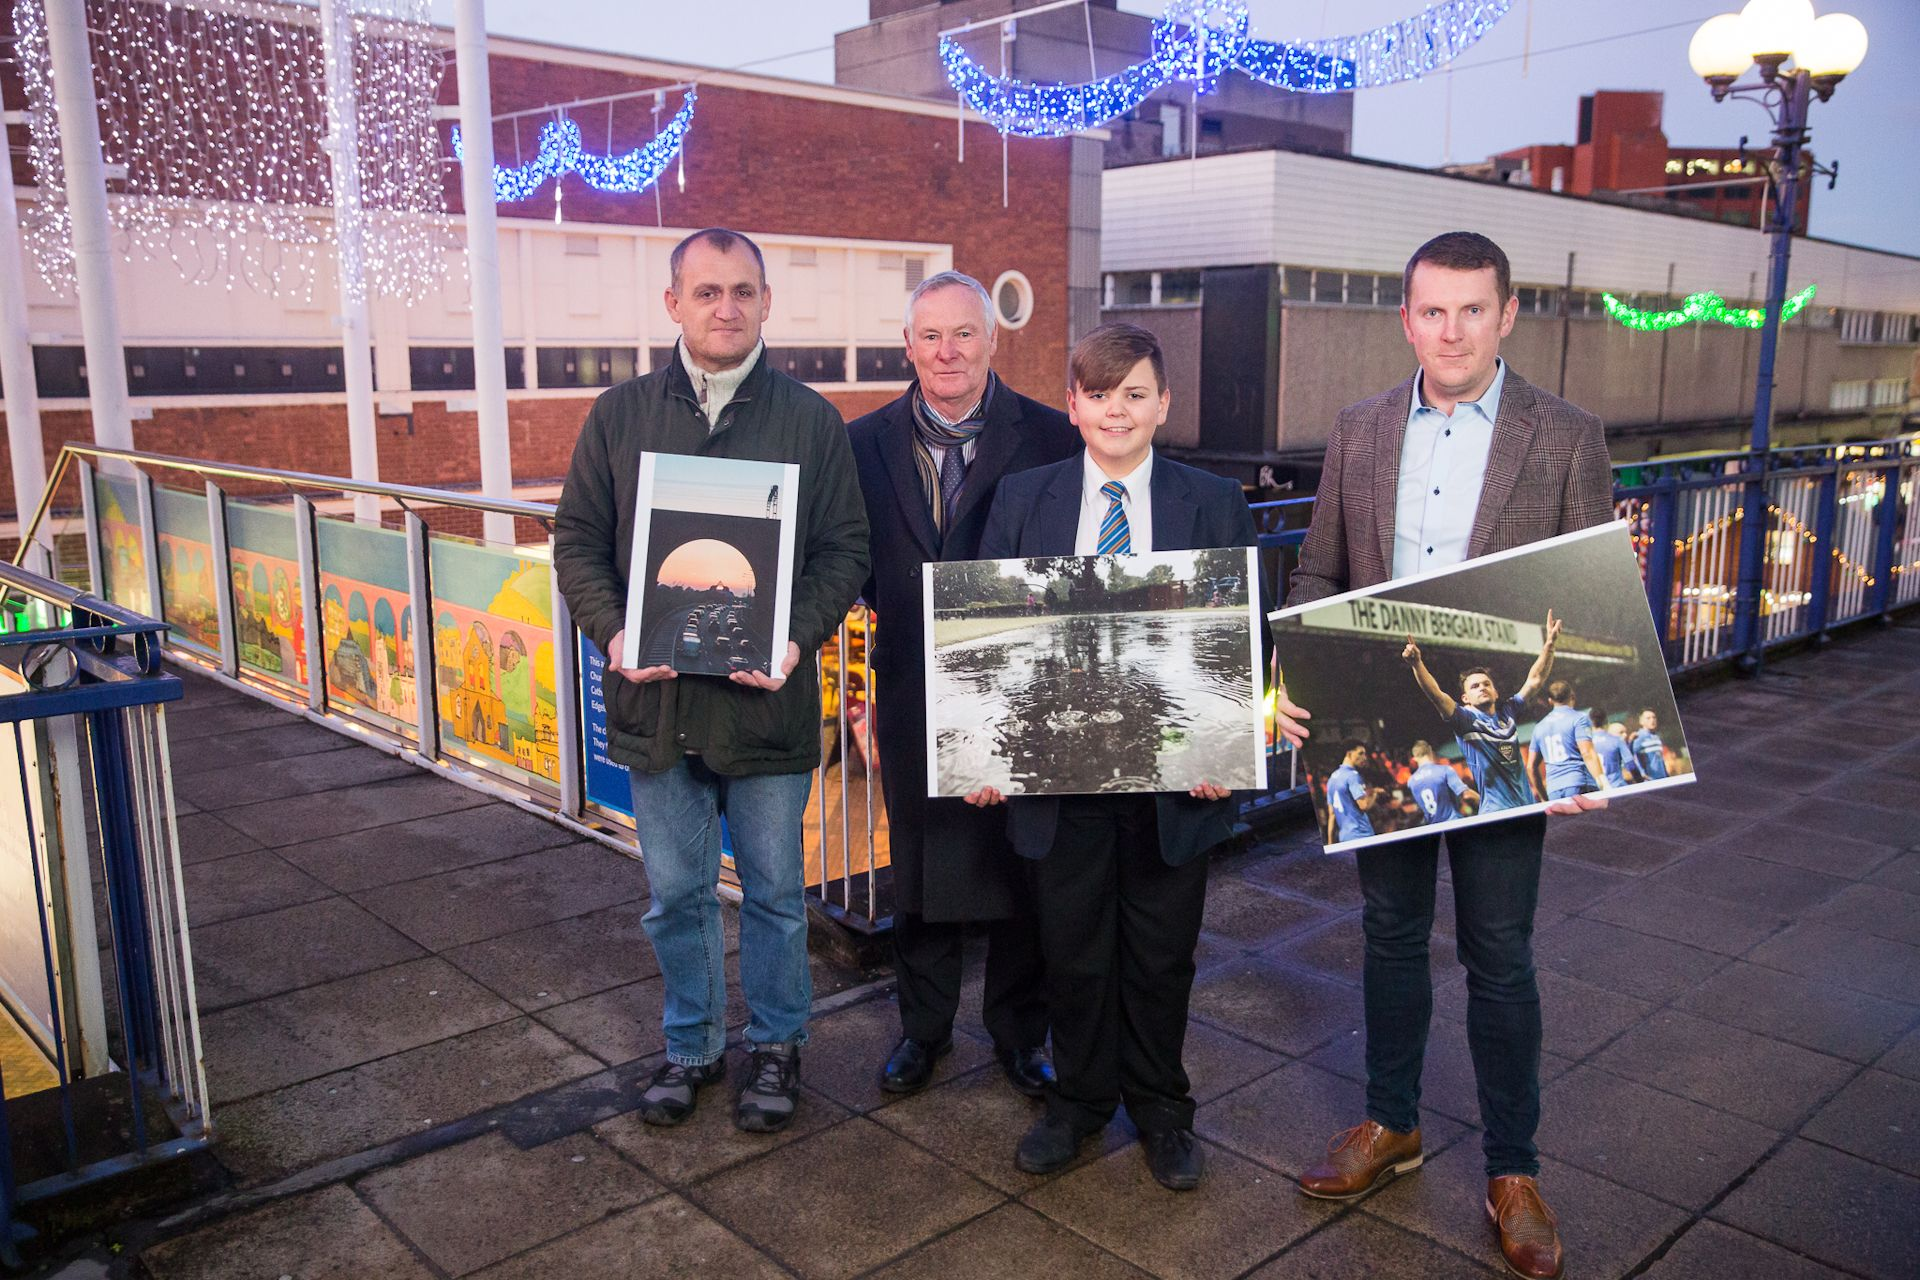 Winners of Merseyway Shopping Centre's photography competition revealed